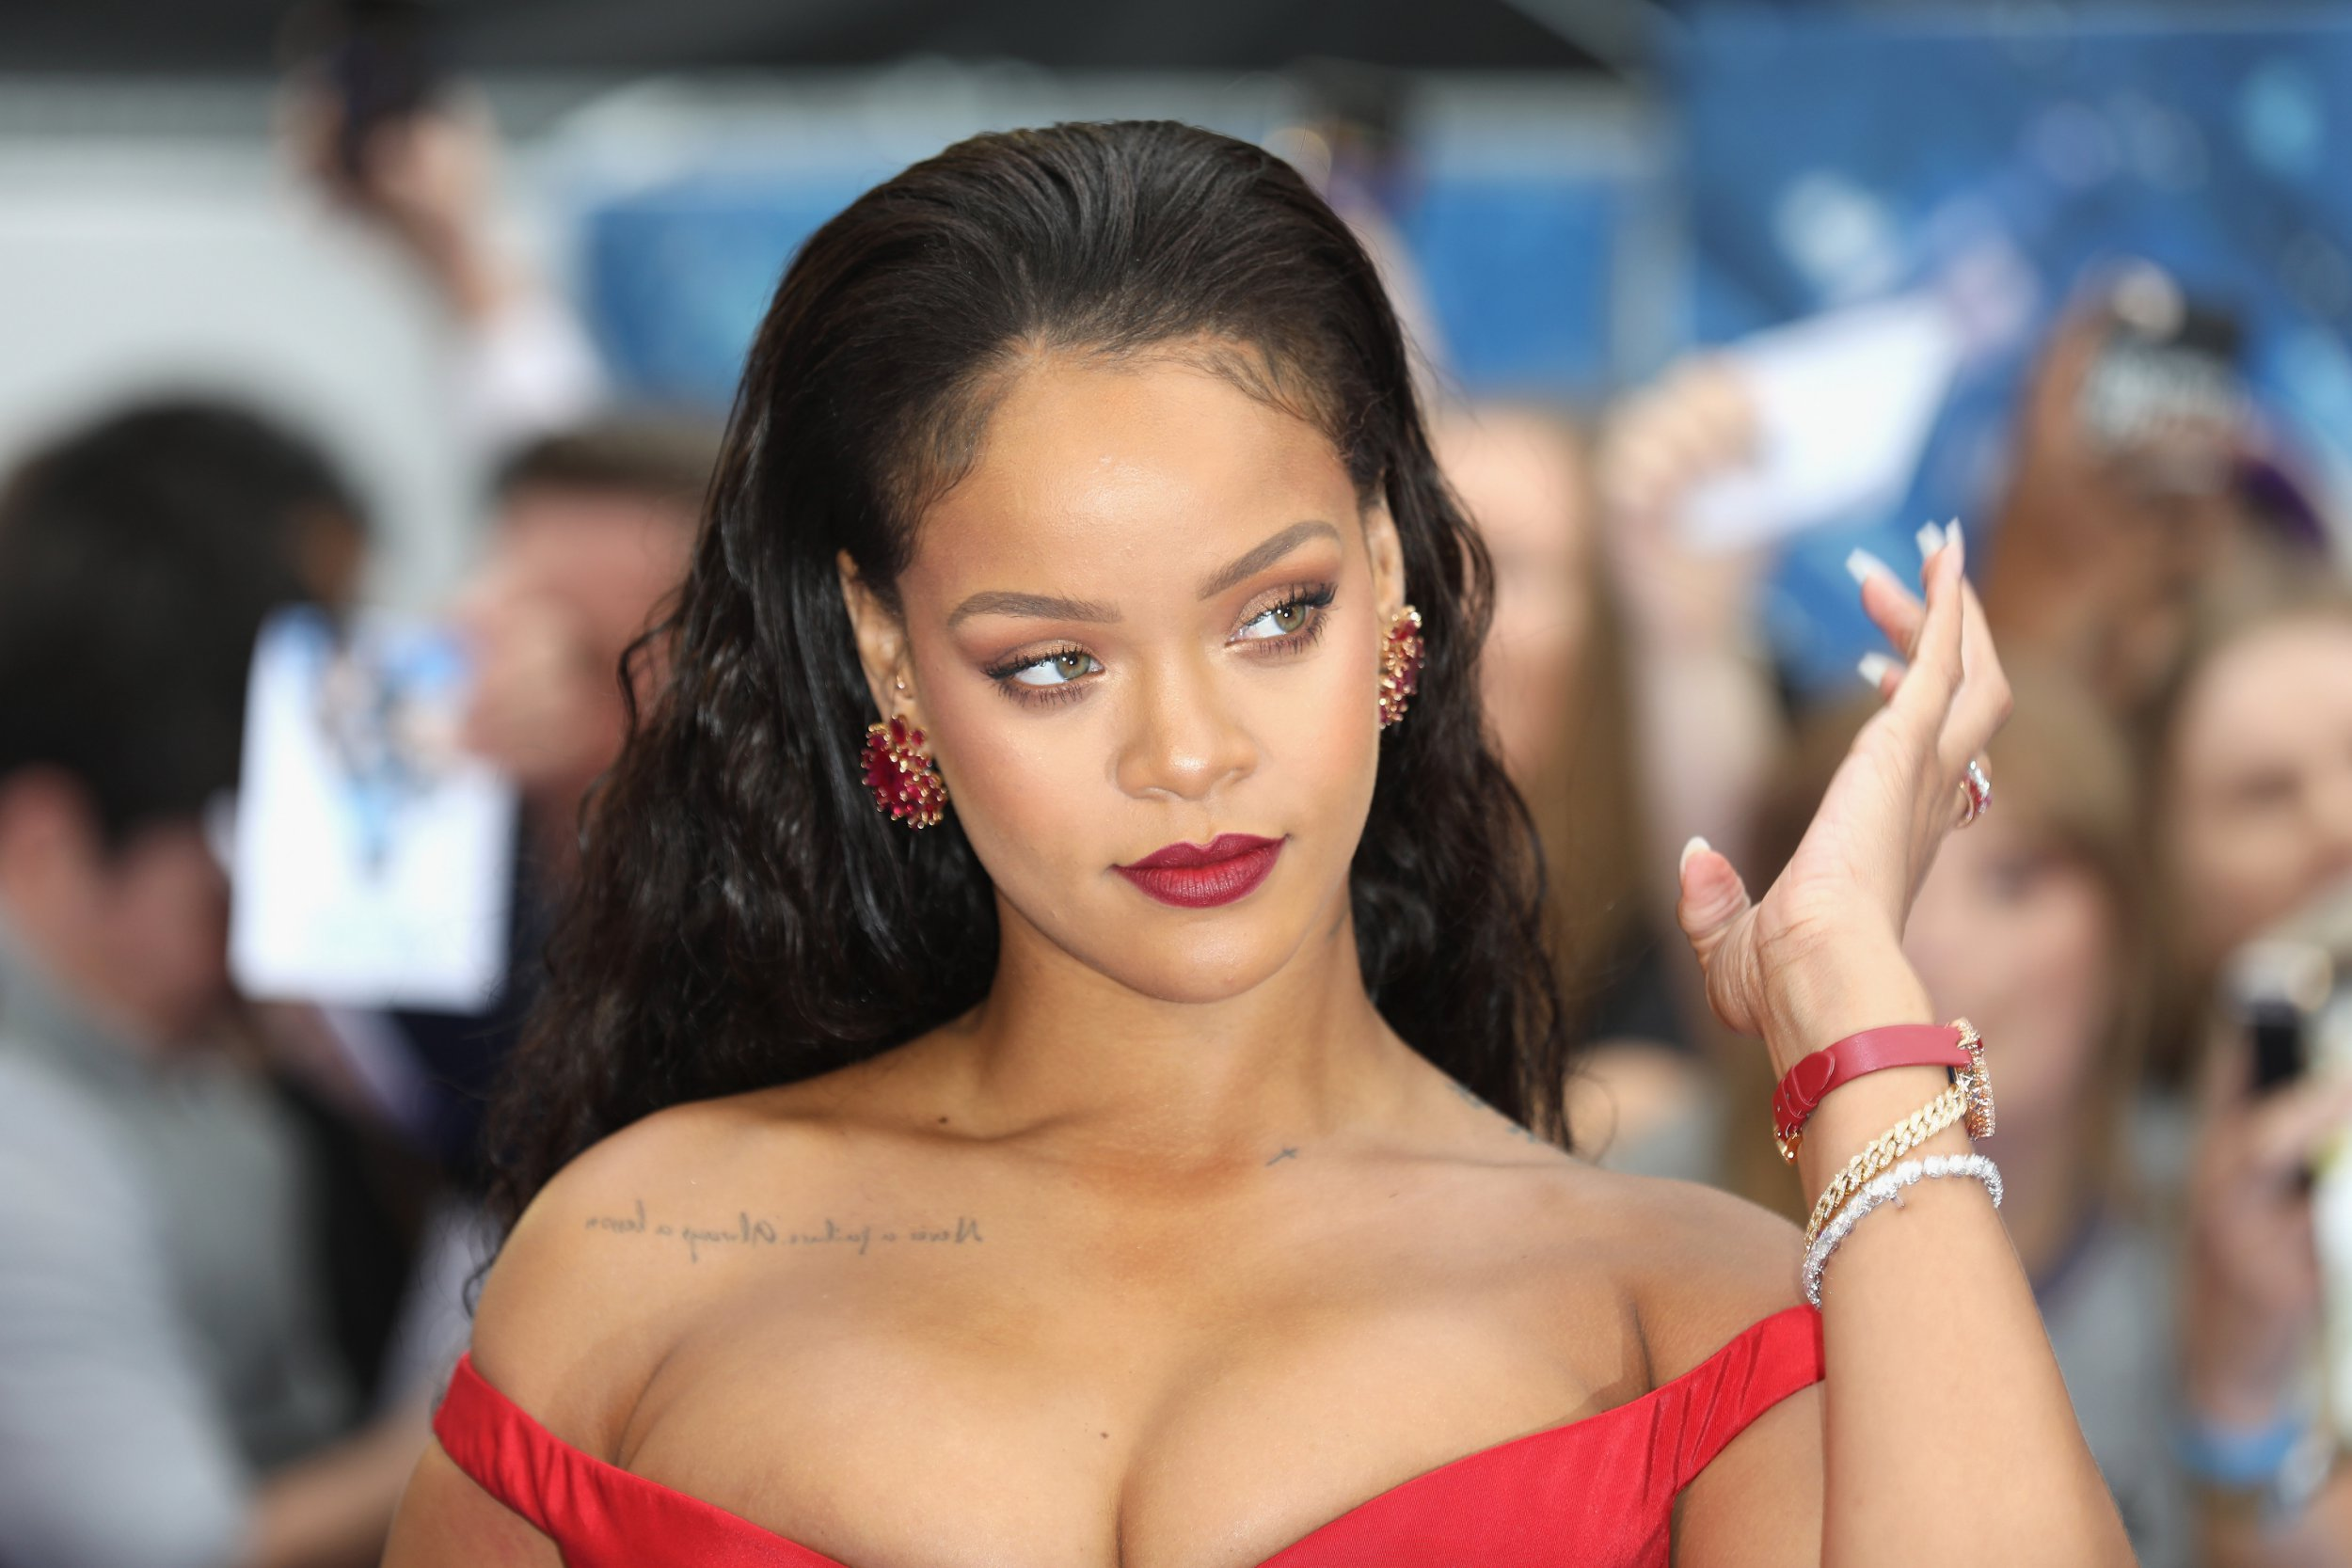 Rihanna opens up about her biggest regret in life – not wearing a special thong